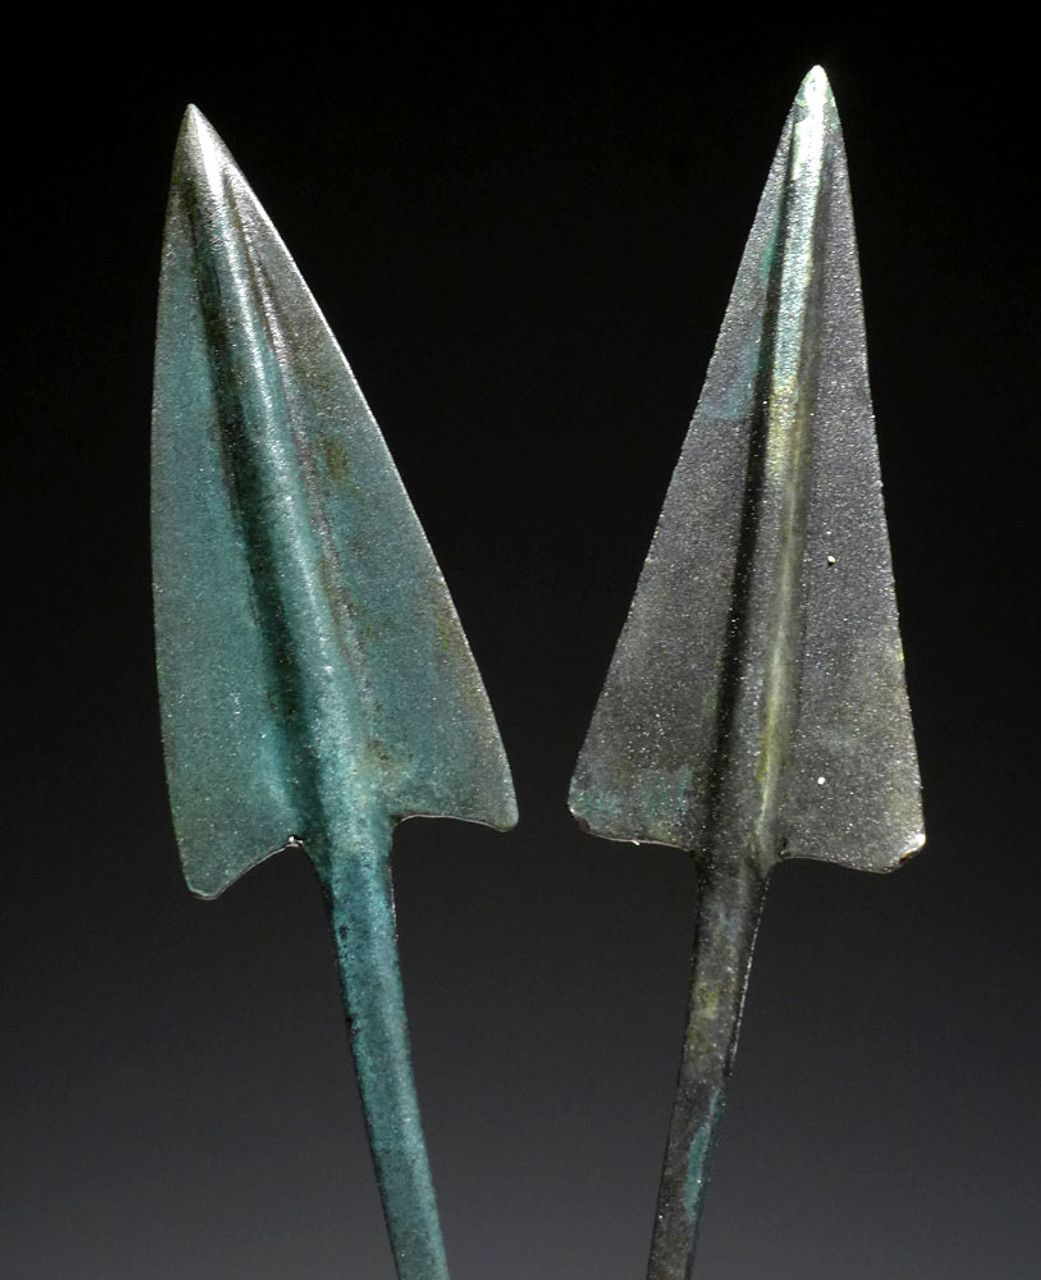 PAIR OF FINEST LARGE ANCIENT BRONZE ARROWHEADS FROM THE NEAR EASTERN LURISTAN CULTURE *NEPC014